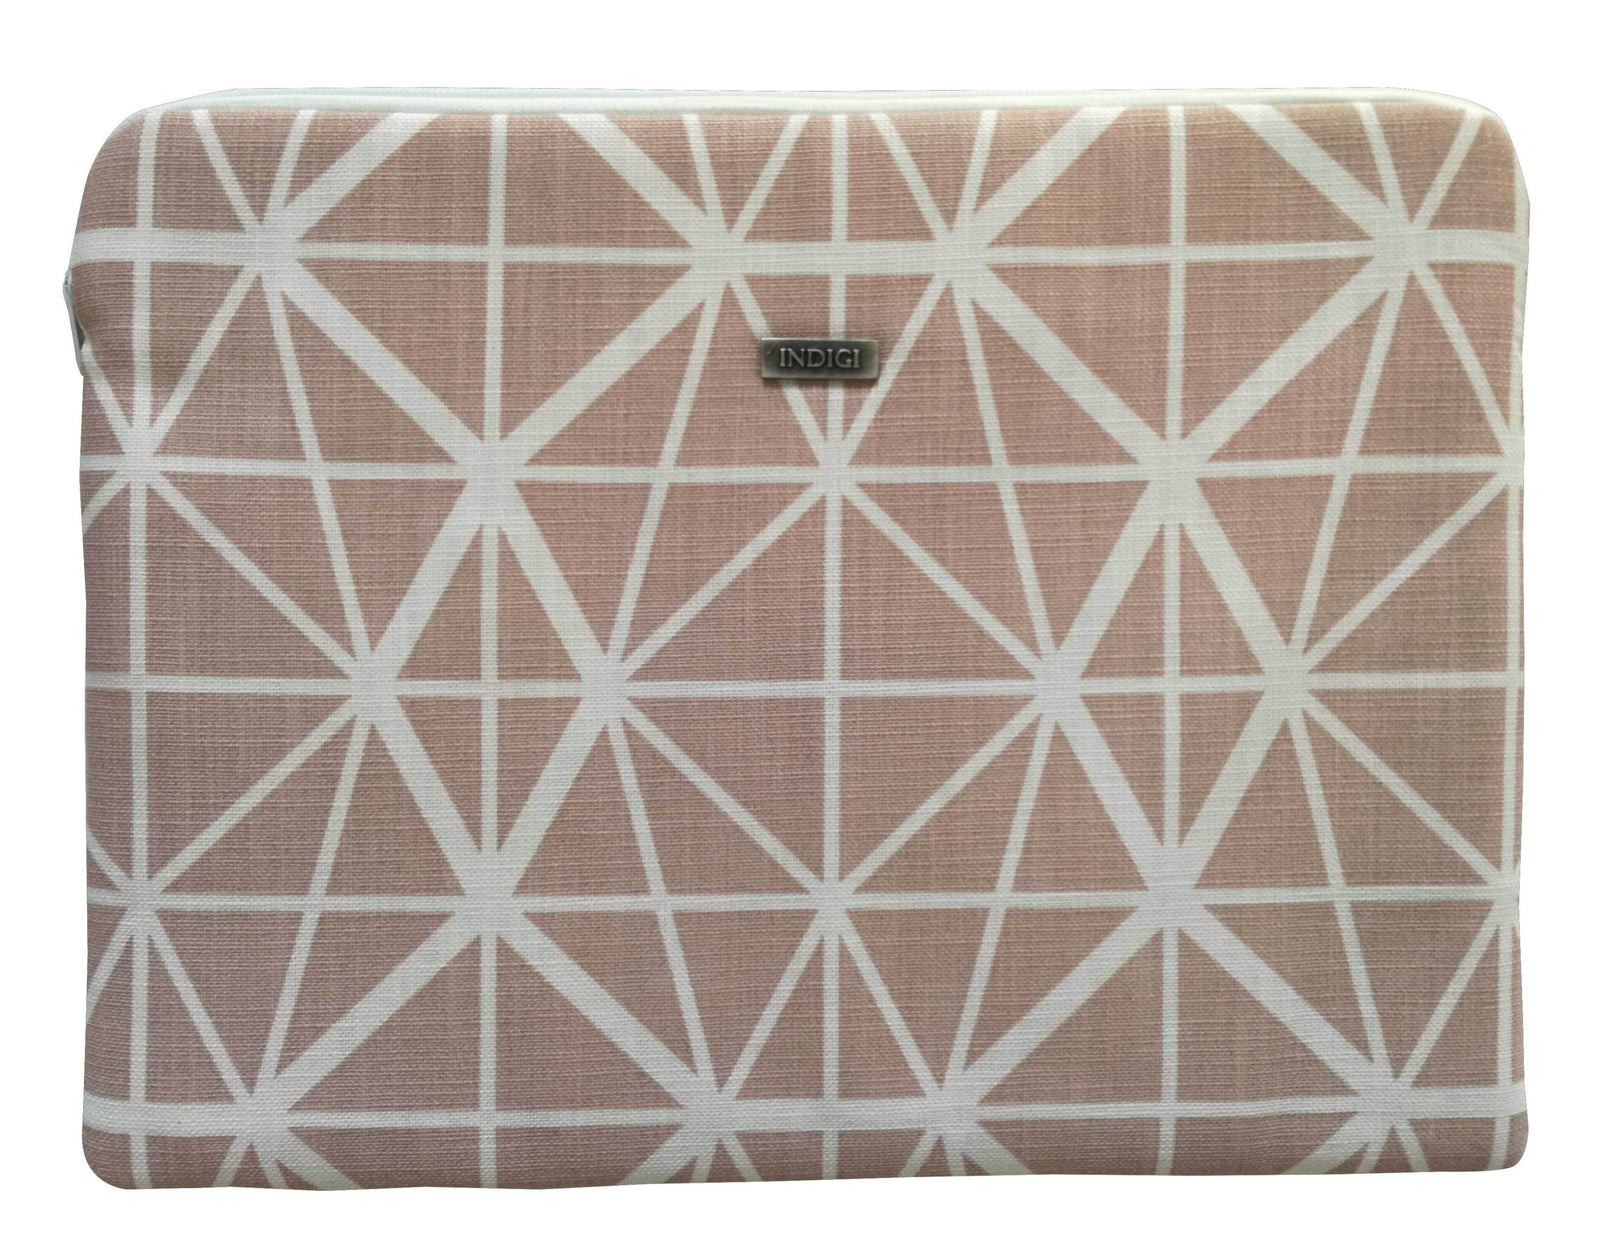 Facet Nude Pink Laptop Sleeve 13 Inch